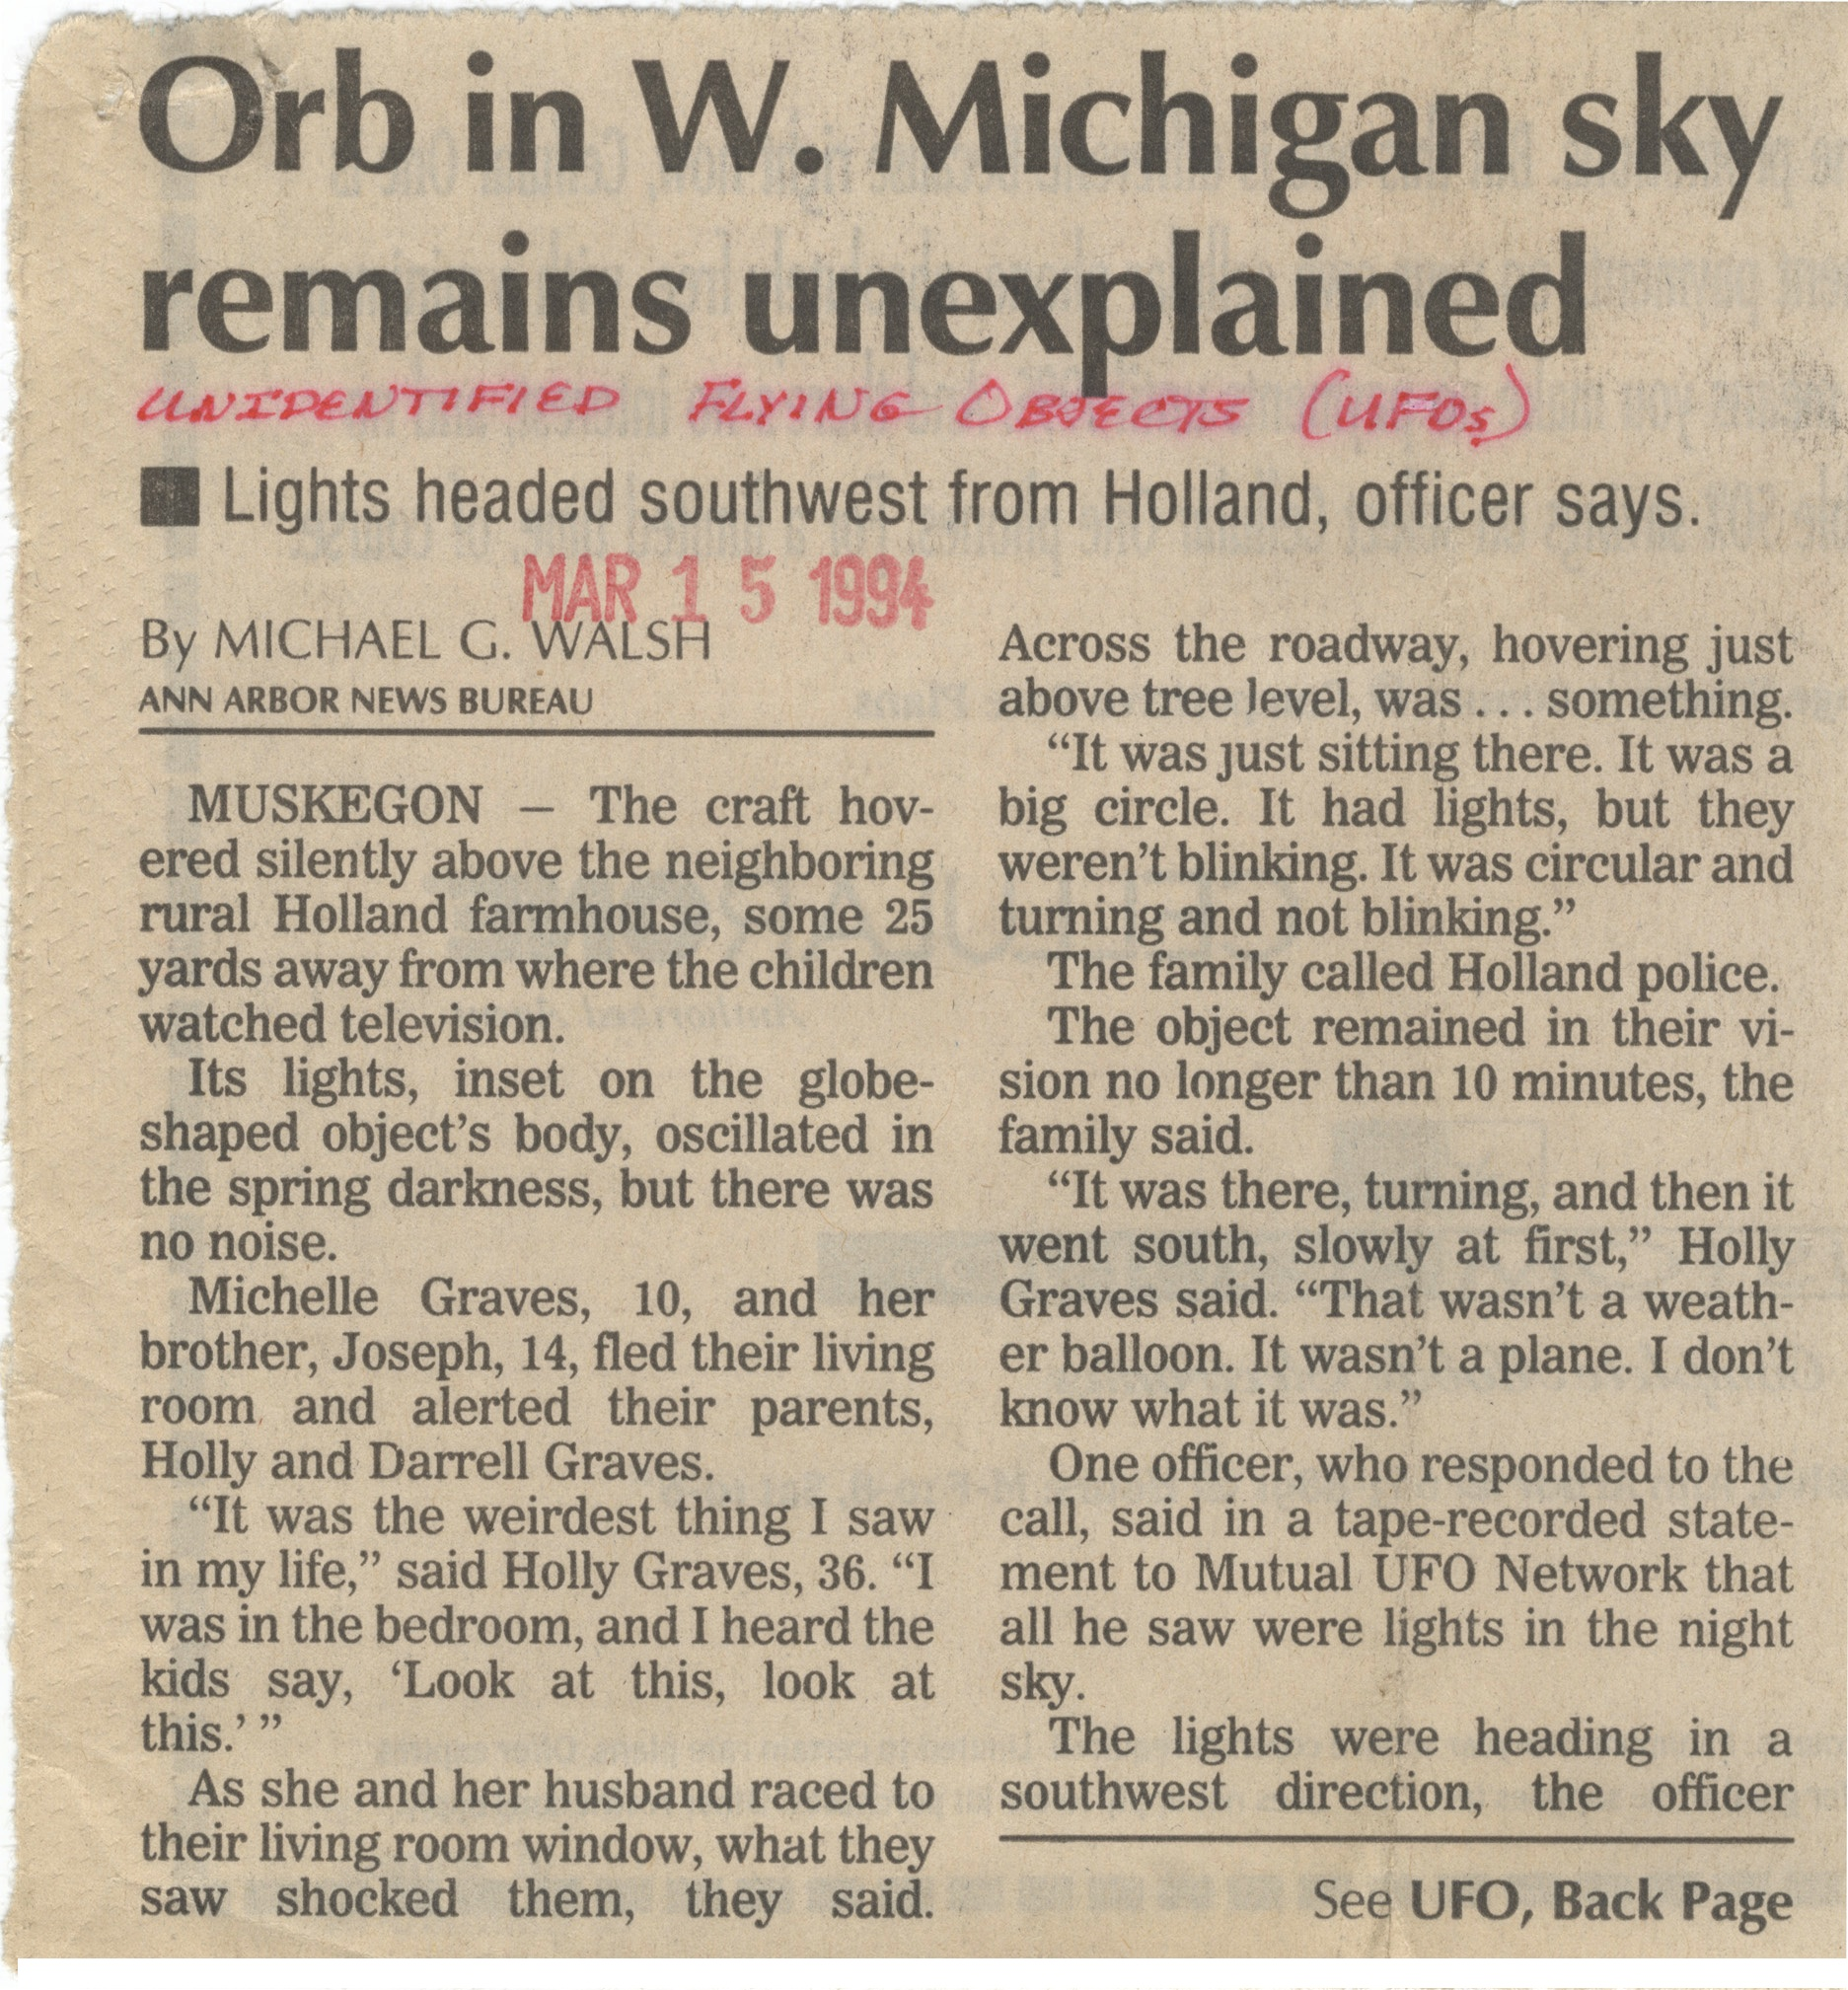 Orb in W. Michigan Sky Remains Unexplained image